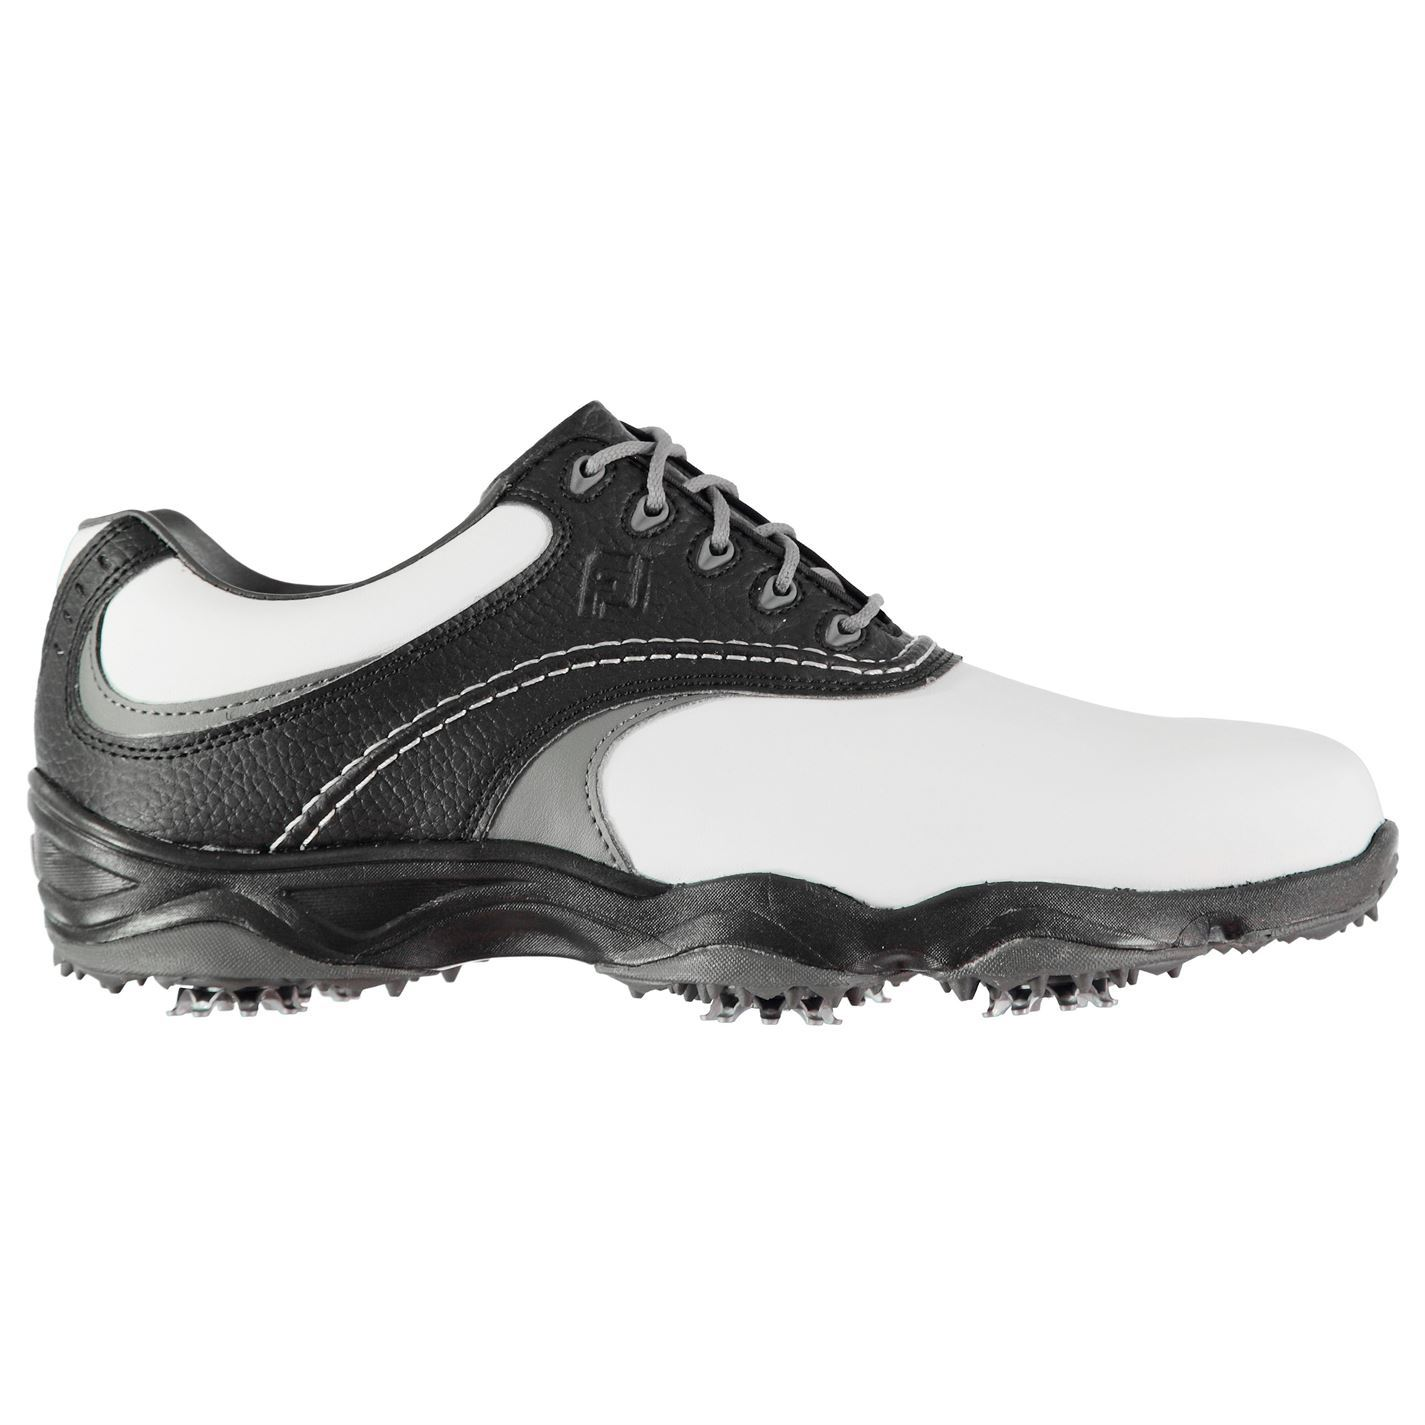 Footjoy-Originals-Golf-Shoes-Mens-Spikes-Footwear thumbnail 14